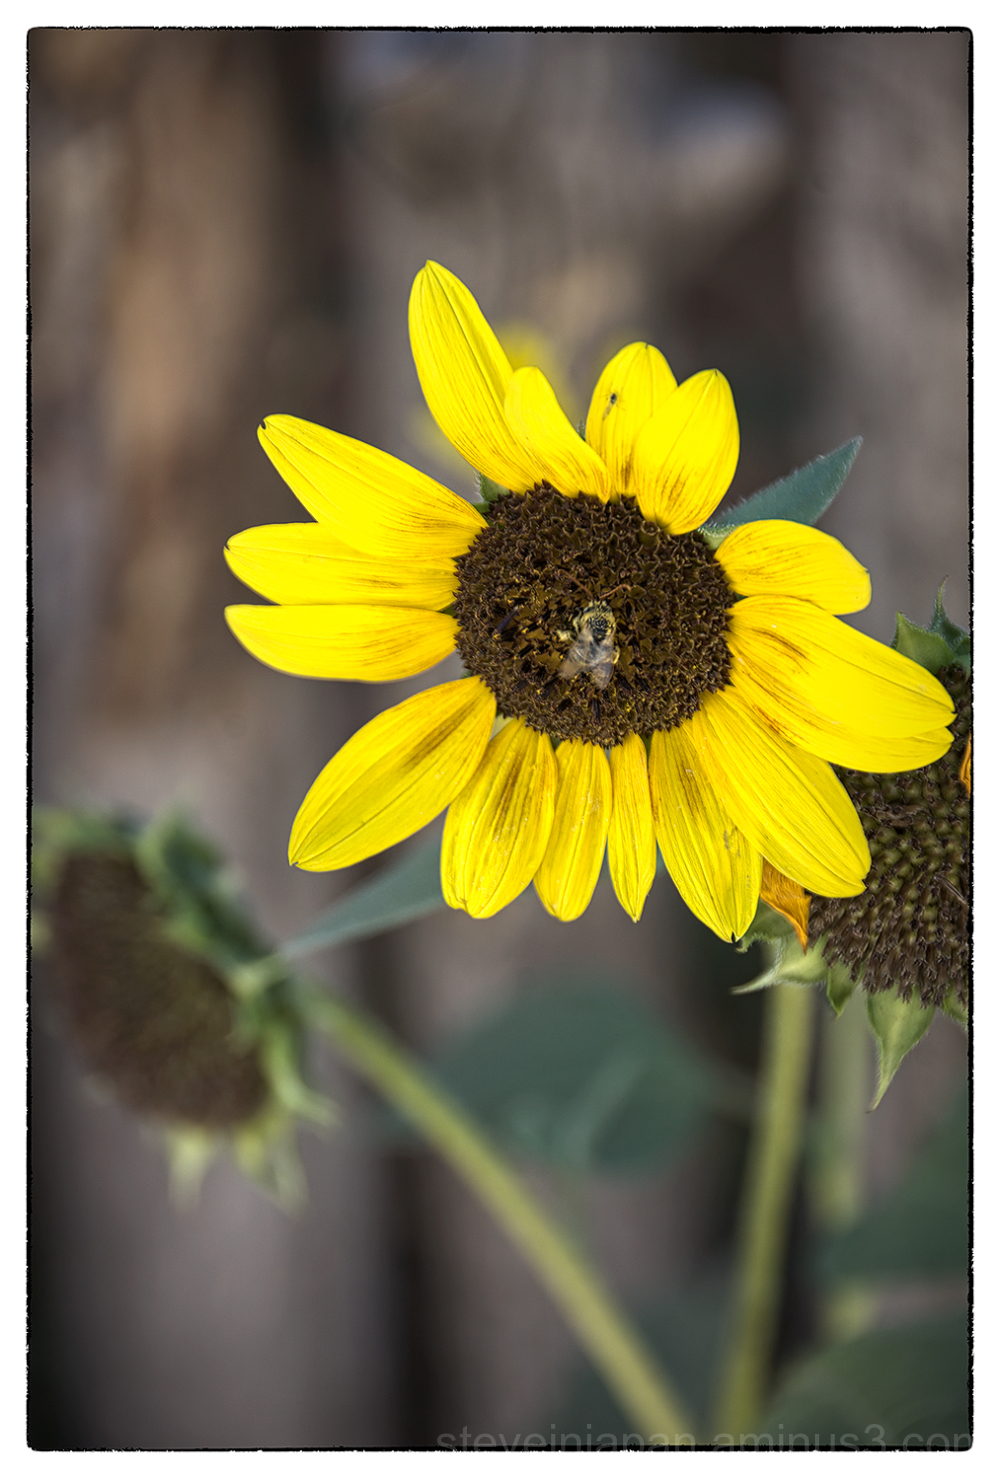 A sunflower & bee in Taos, New Mexico.